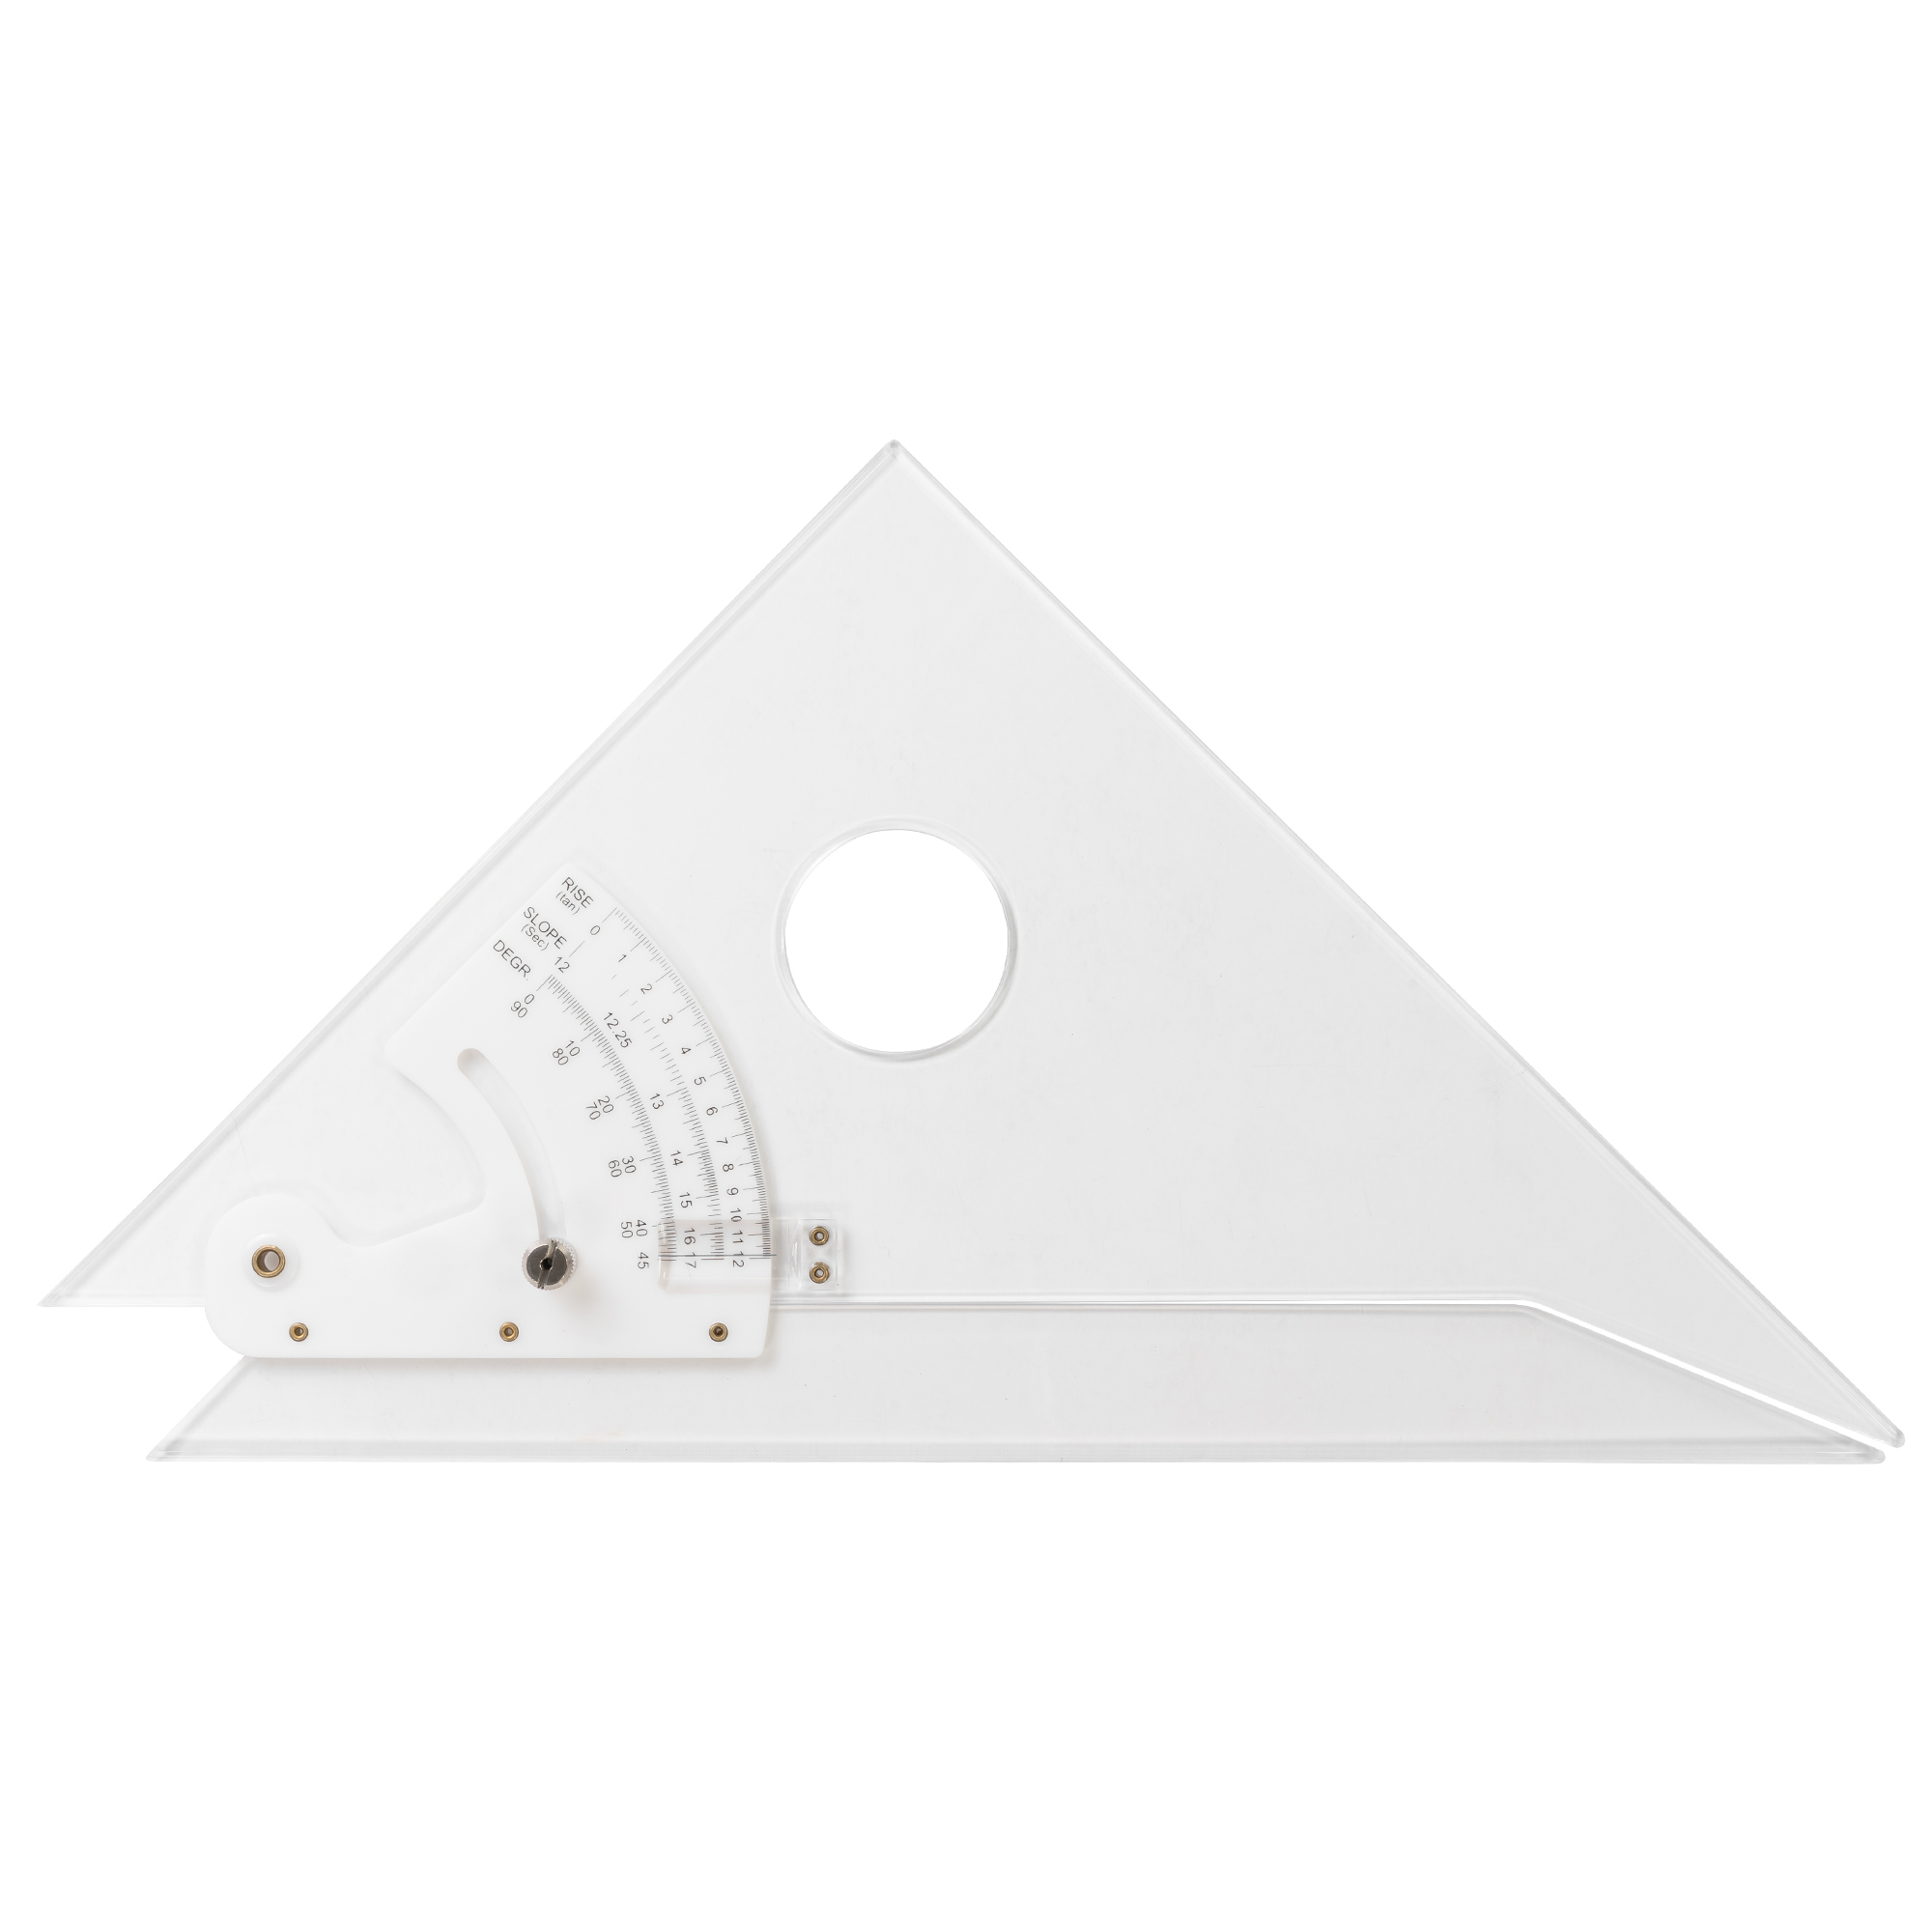 adjustable triangle with a circular holepunch great for holding and making circular design within your square measurement design by pacific arc